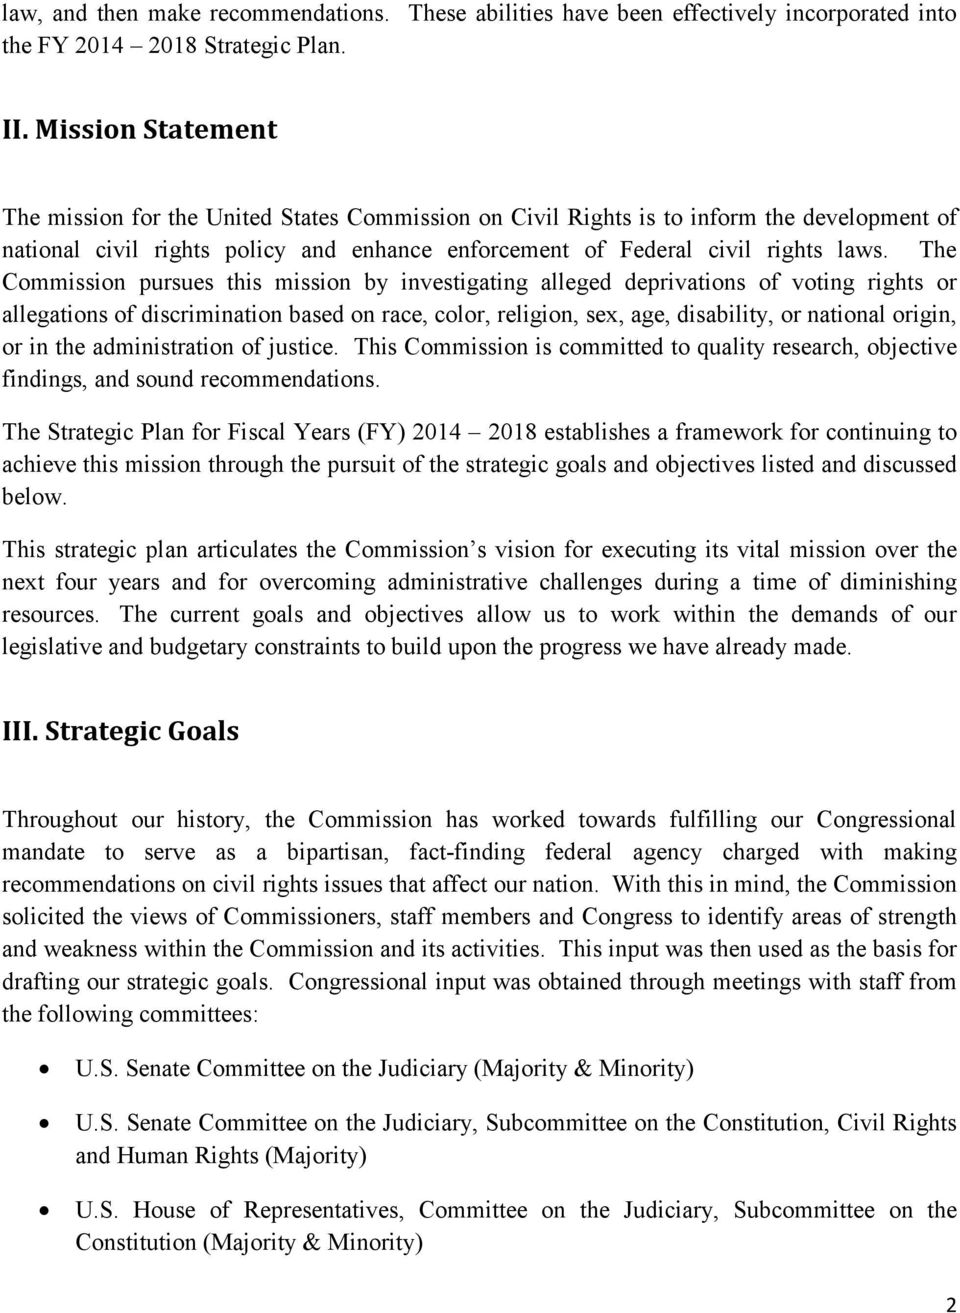 The Commission pursues this mission by investigating alleged deprivations of voting rights or allegations of discrimination based on race, color, religion, sex, age, disability, or national origin,